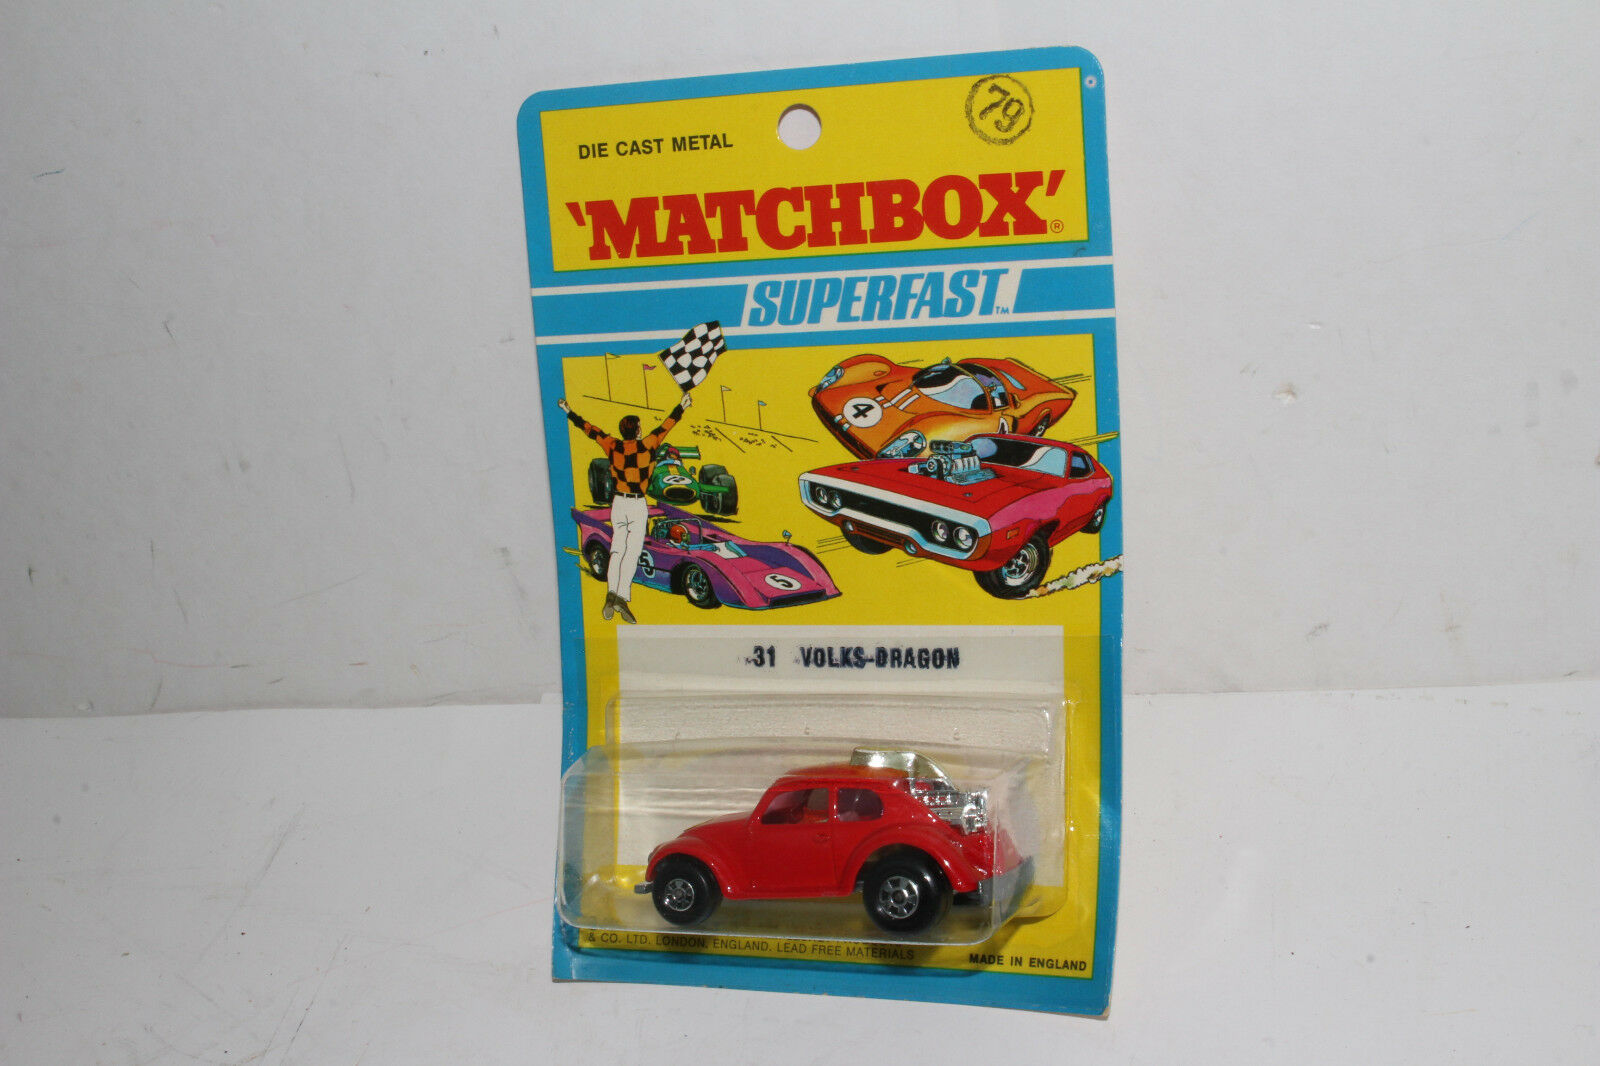 Matchbox Superfast Volks-Dragon Volkswagen VW Escarabajo Street Rod ,